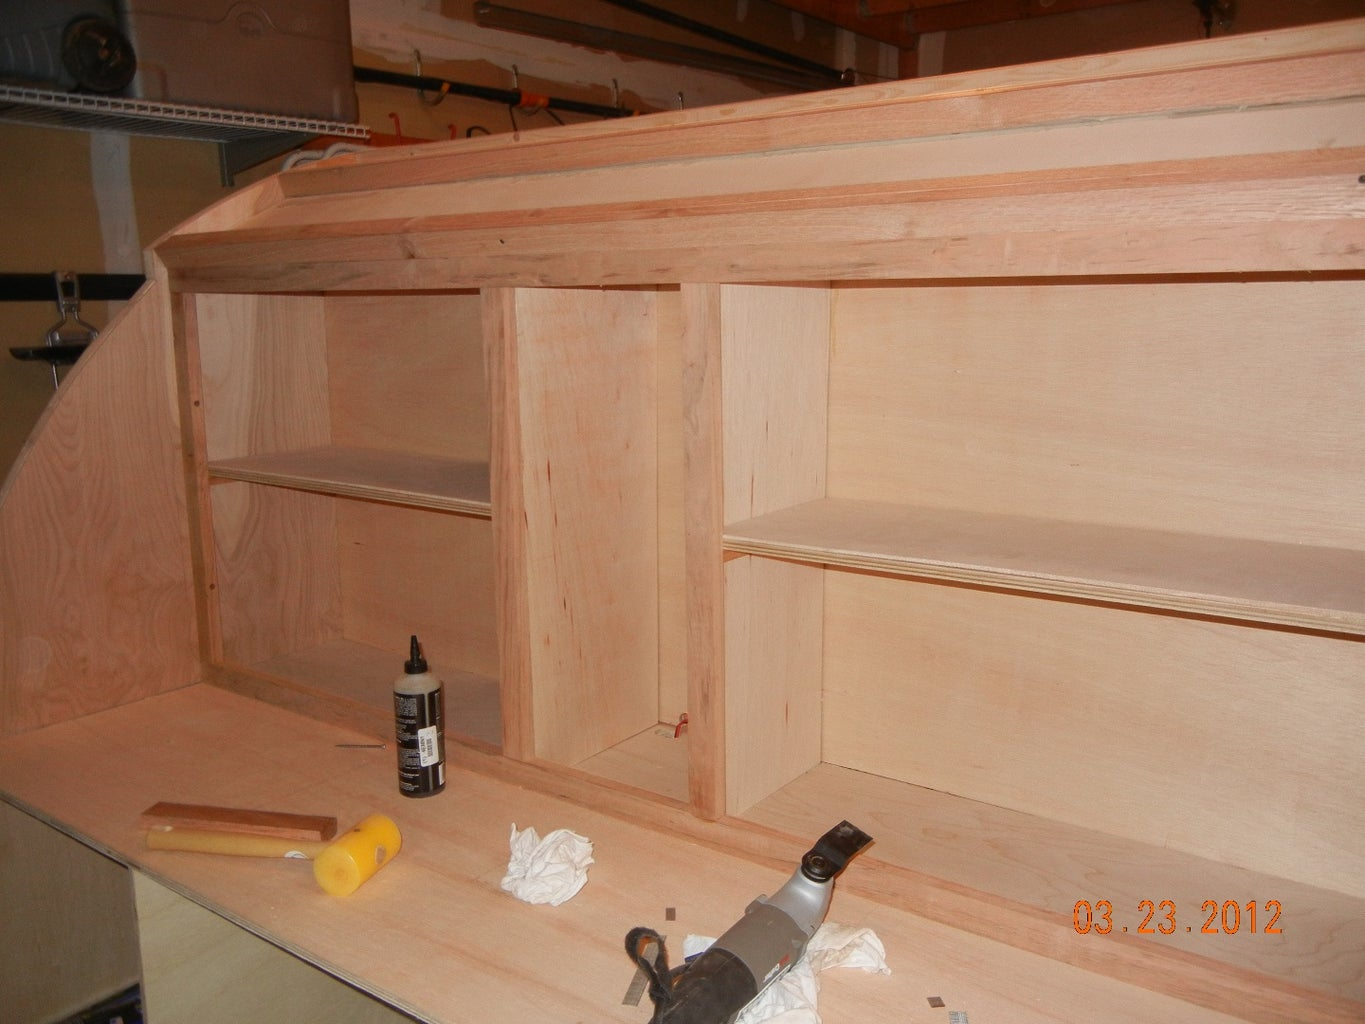 Cabinetry - Part 1